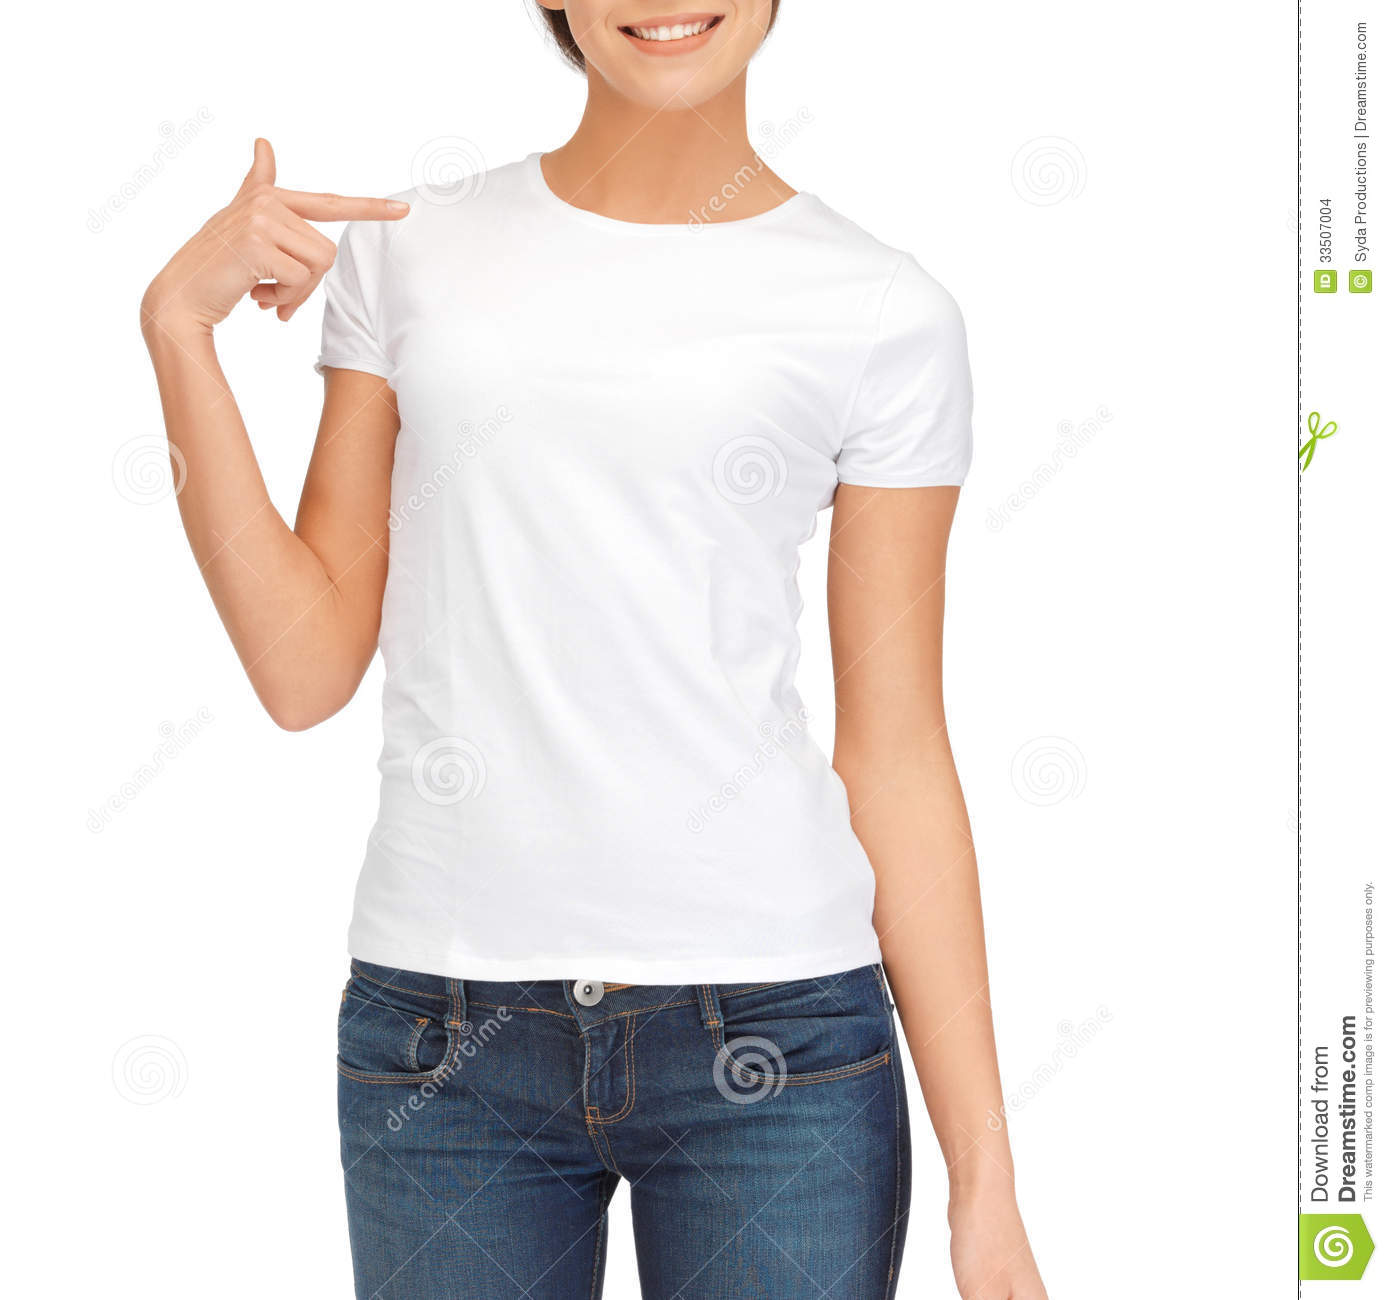 woman in blank white t-shirt stock images